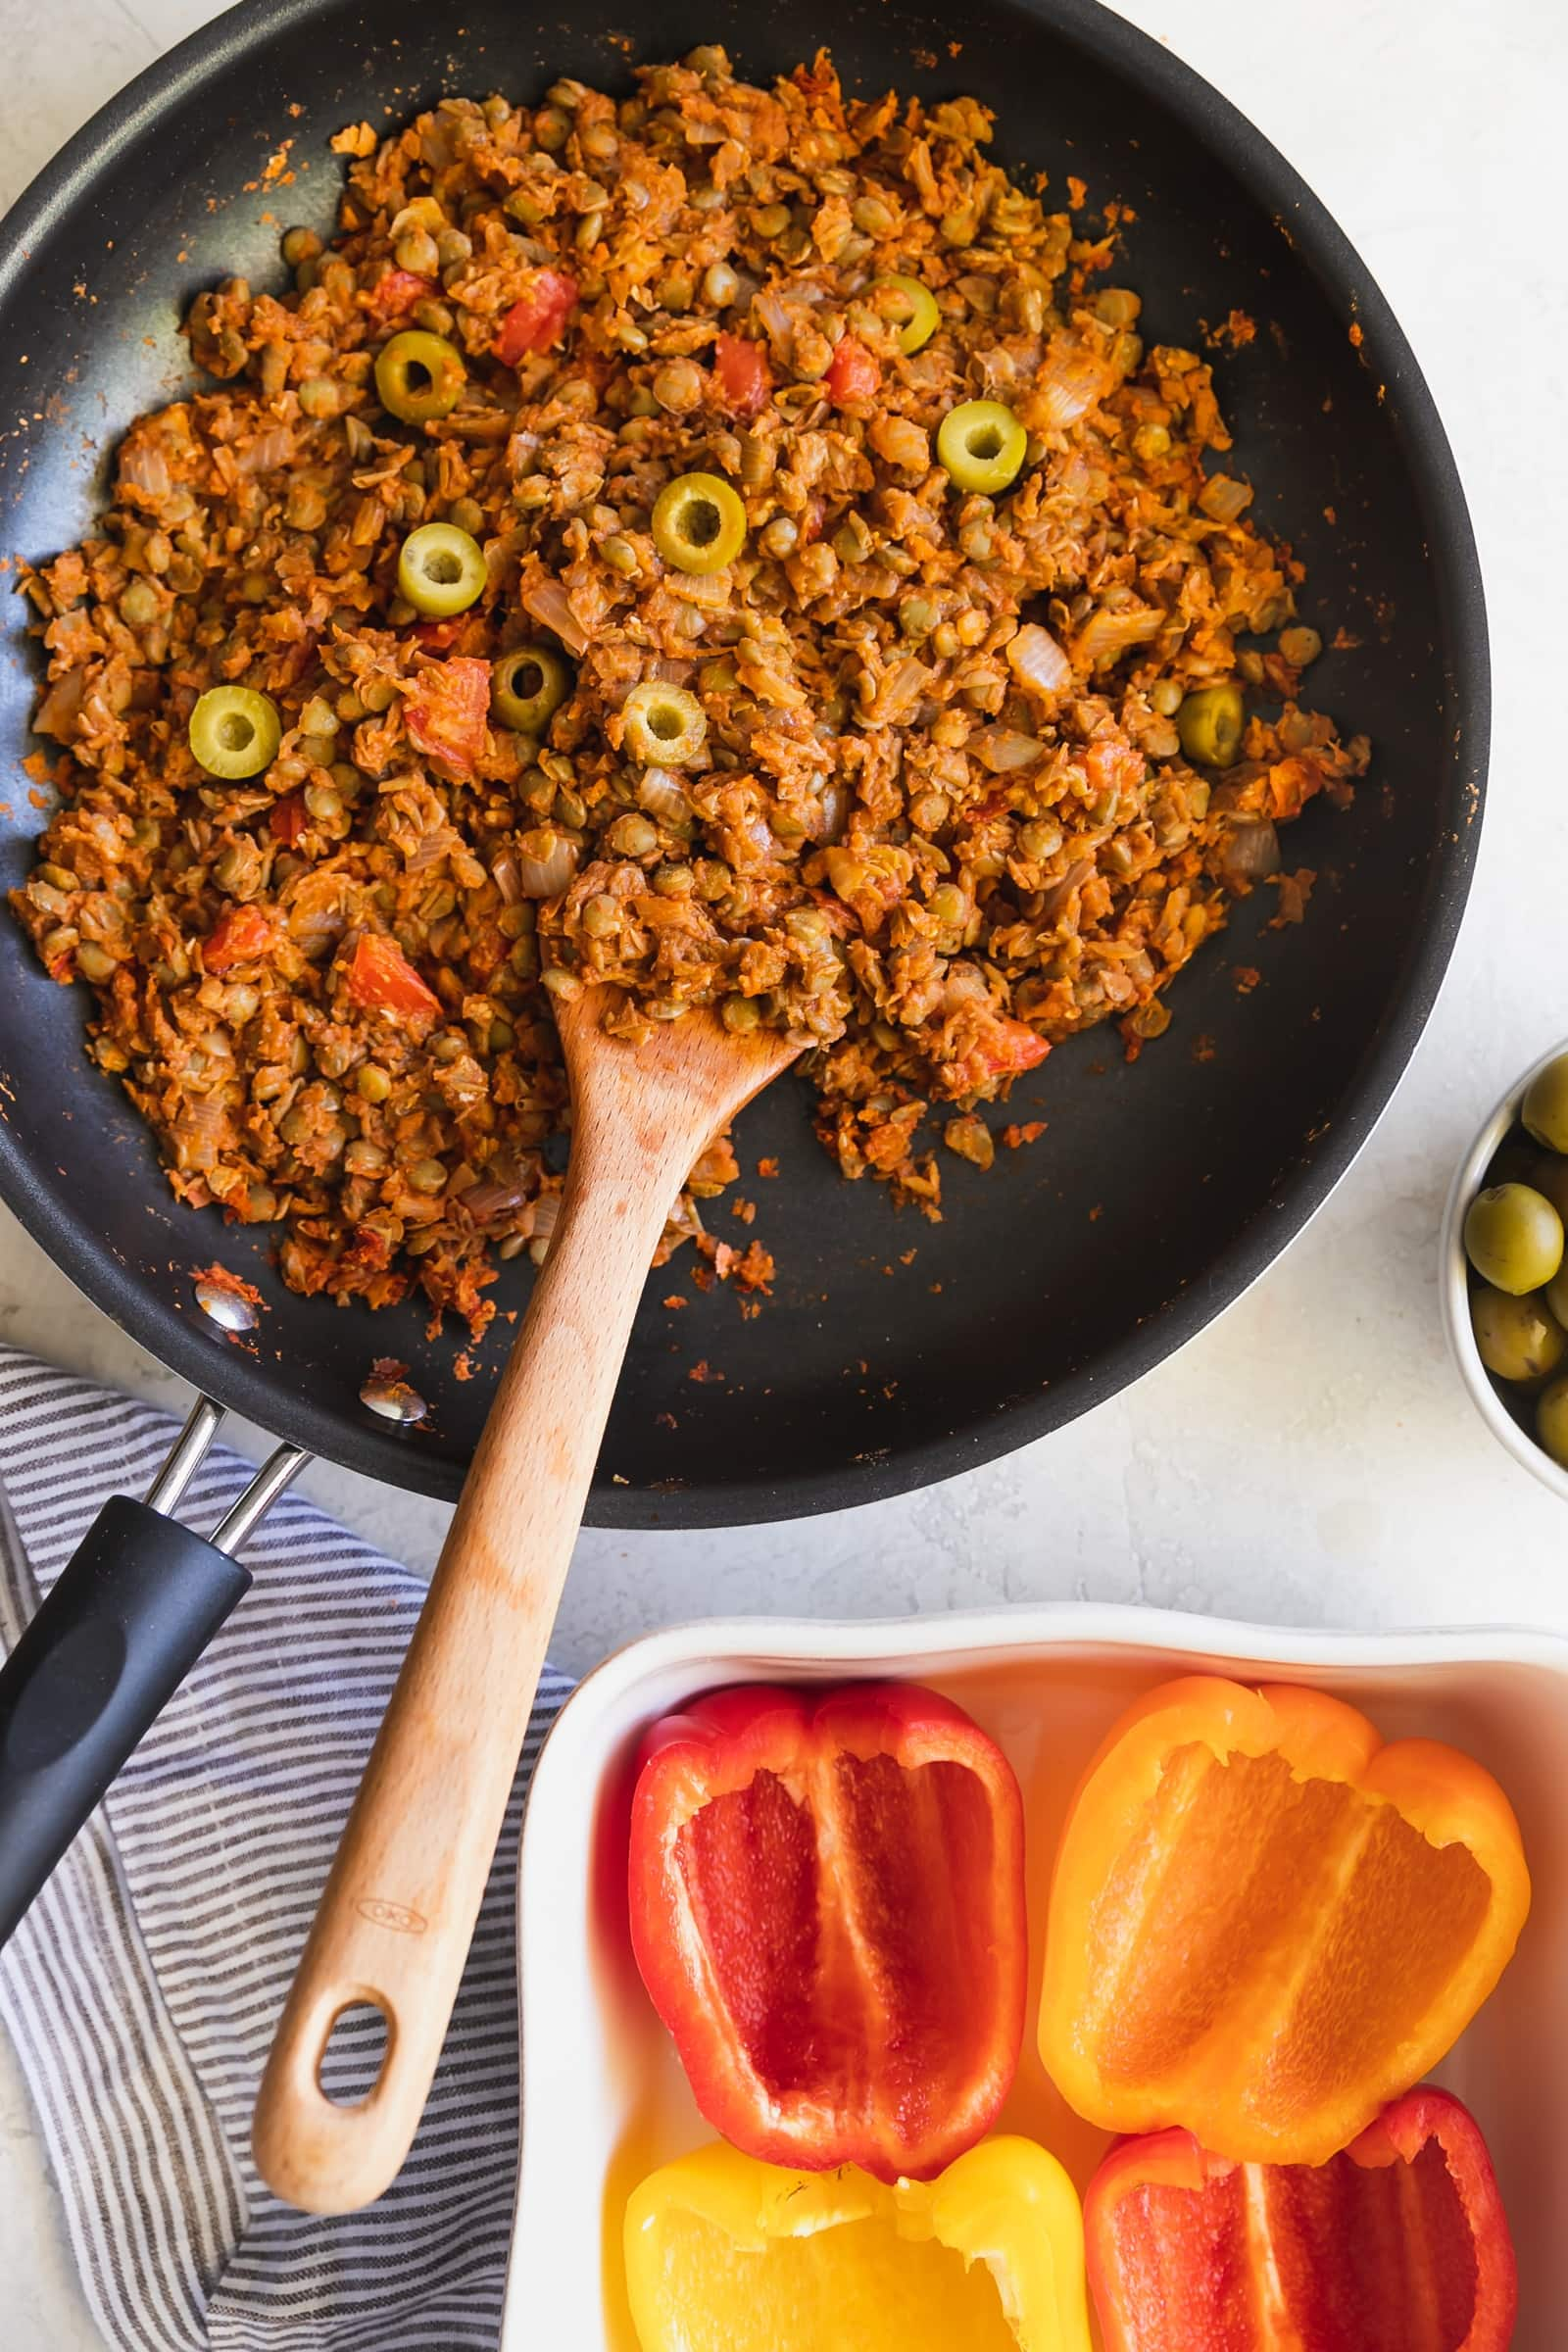 Cuban-Style Vegan Picadillo Stuffed Peppers. This vegan picadillo is a plant-based meal made Cuban-style with lentils, spices, onions, garlic, tomatoes, olives then stuffed in bell peppers. Perfect weeknight dinner!